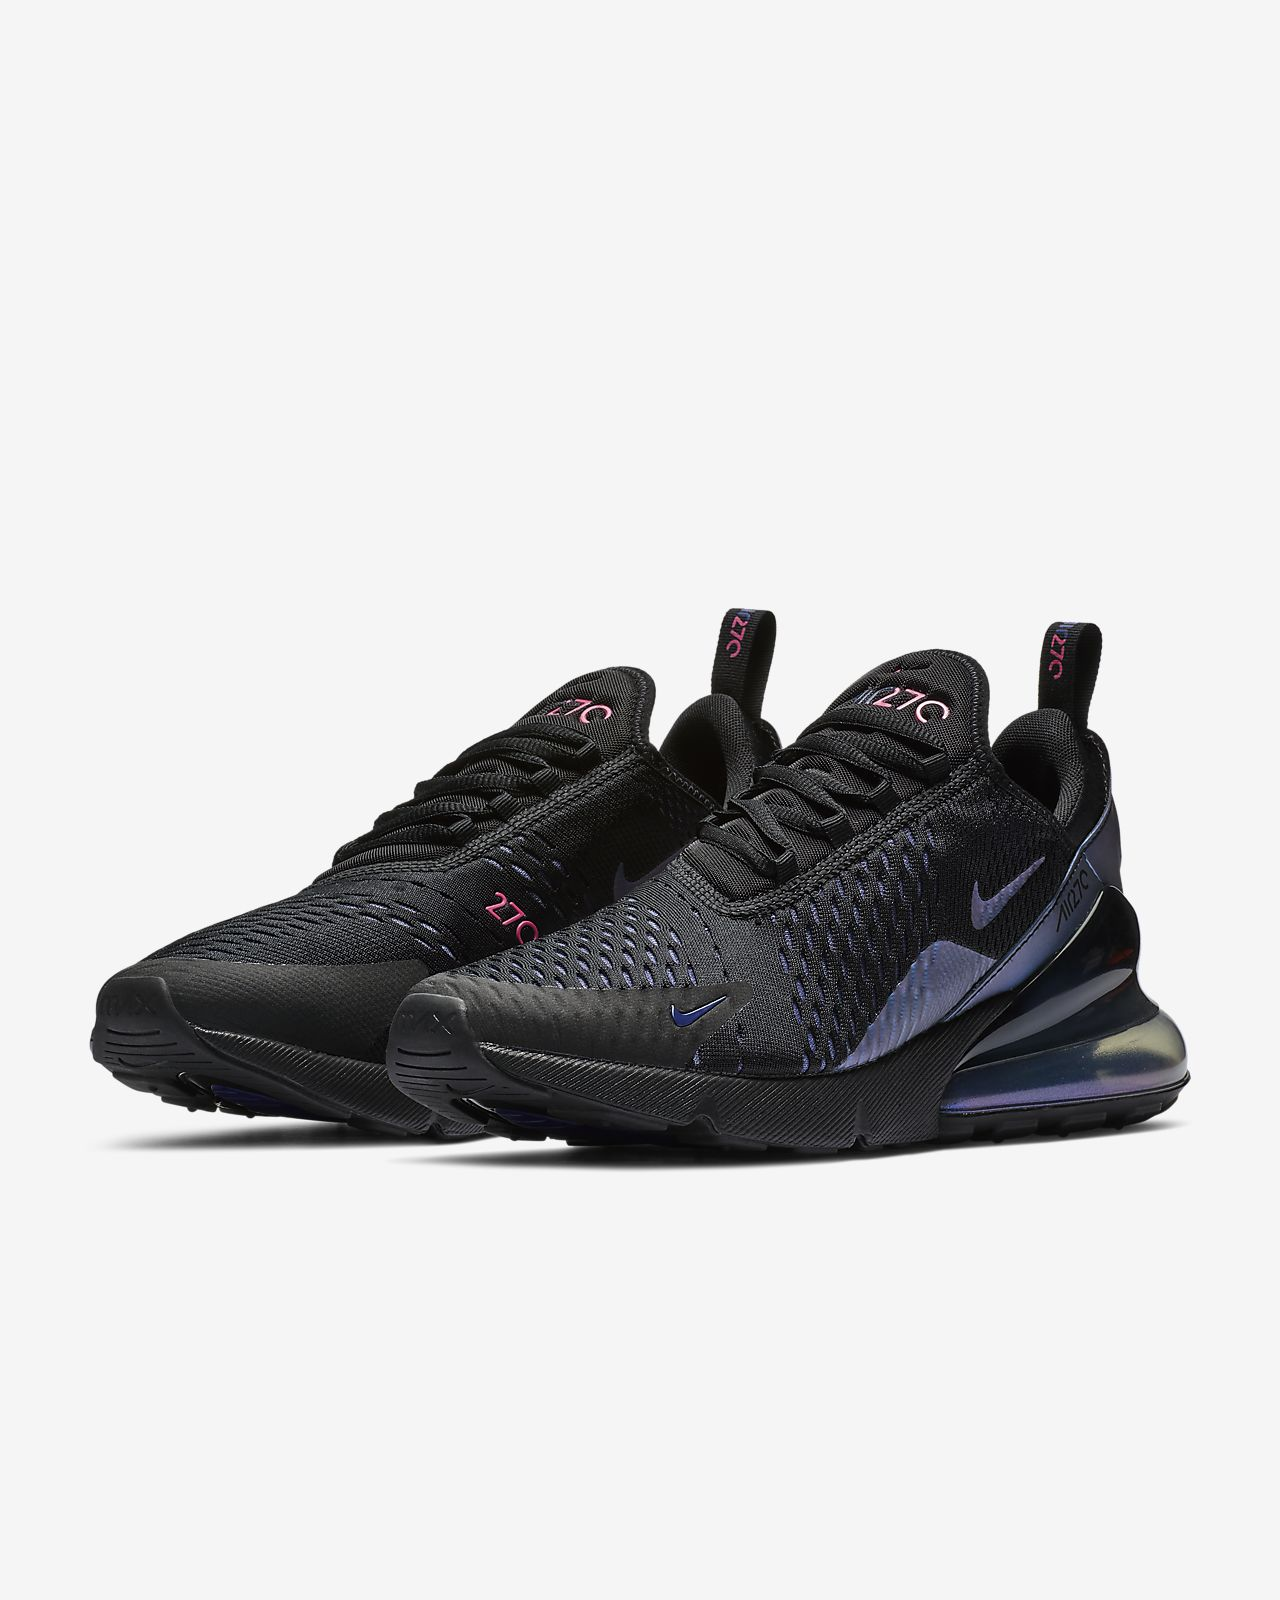 reputable site 9b790 c1934 ... Nike Air Max 270 Mens Shoe